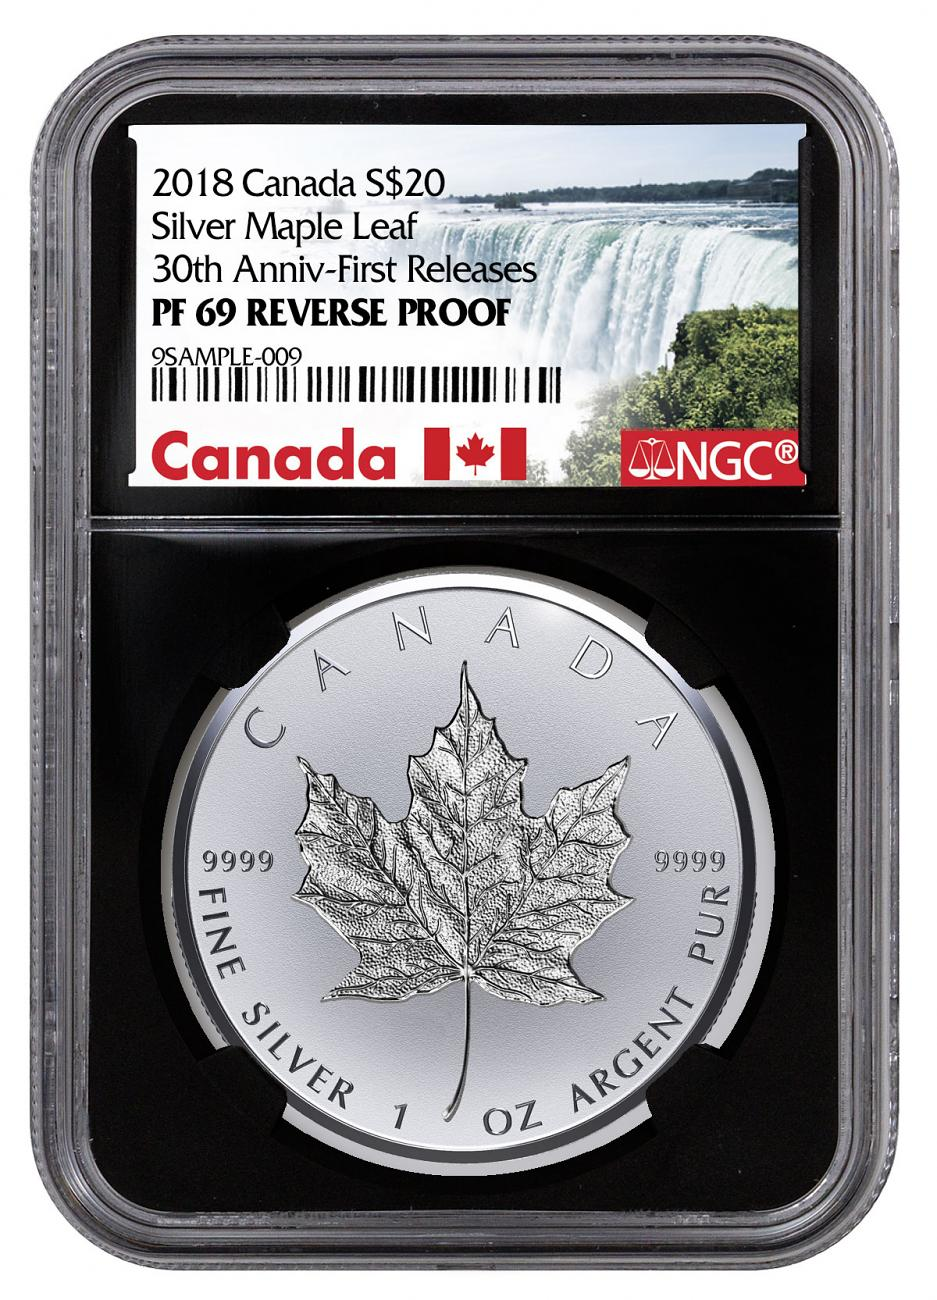 2018 Canada 1 oz Silver Maple Leaf - Incuse Reverse Proof $20 Coin NGC PF69 FR Black Core Holder Exclusive Canada Label